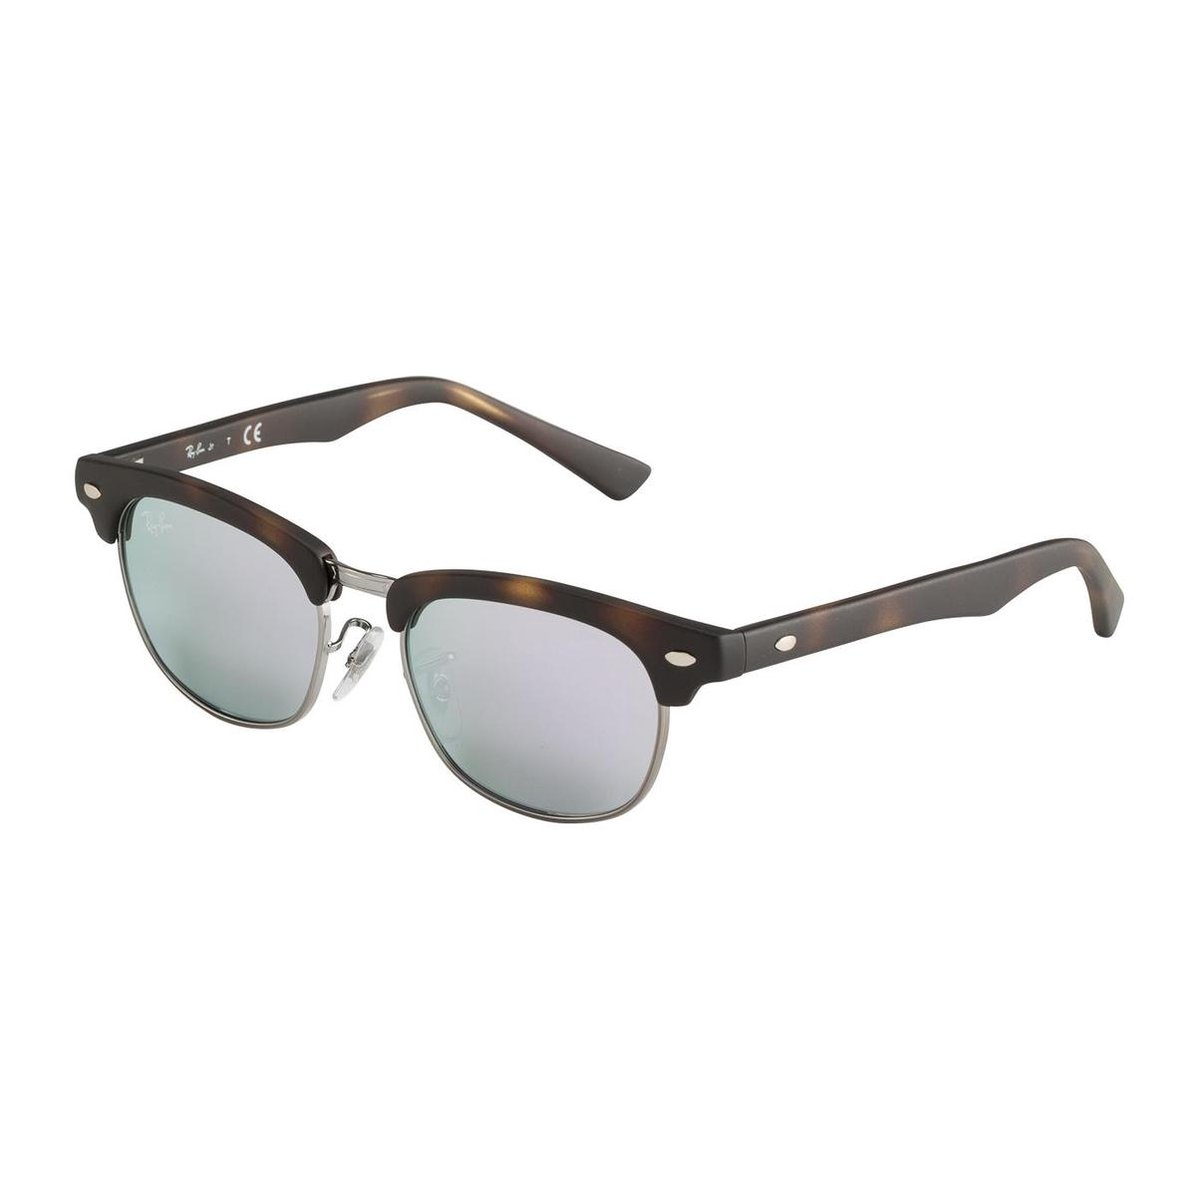 Ray-Ban Clubmaster RJ9050S - Zonnebril - Paars - 45 mm - Ray-Ban